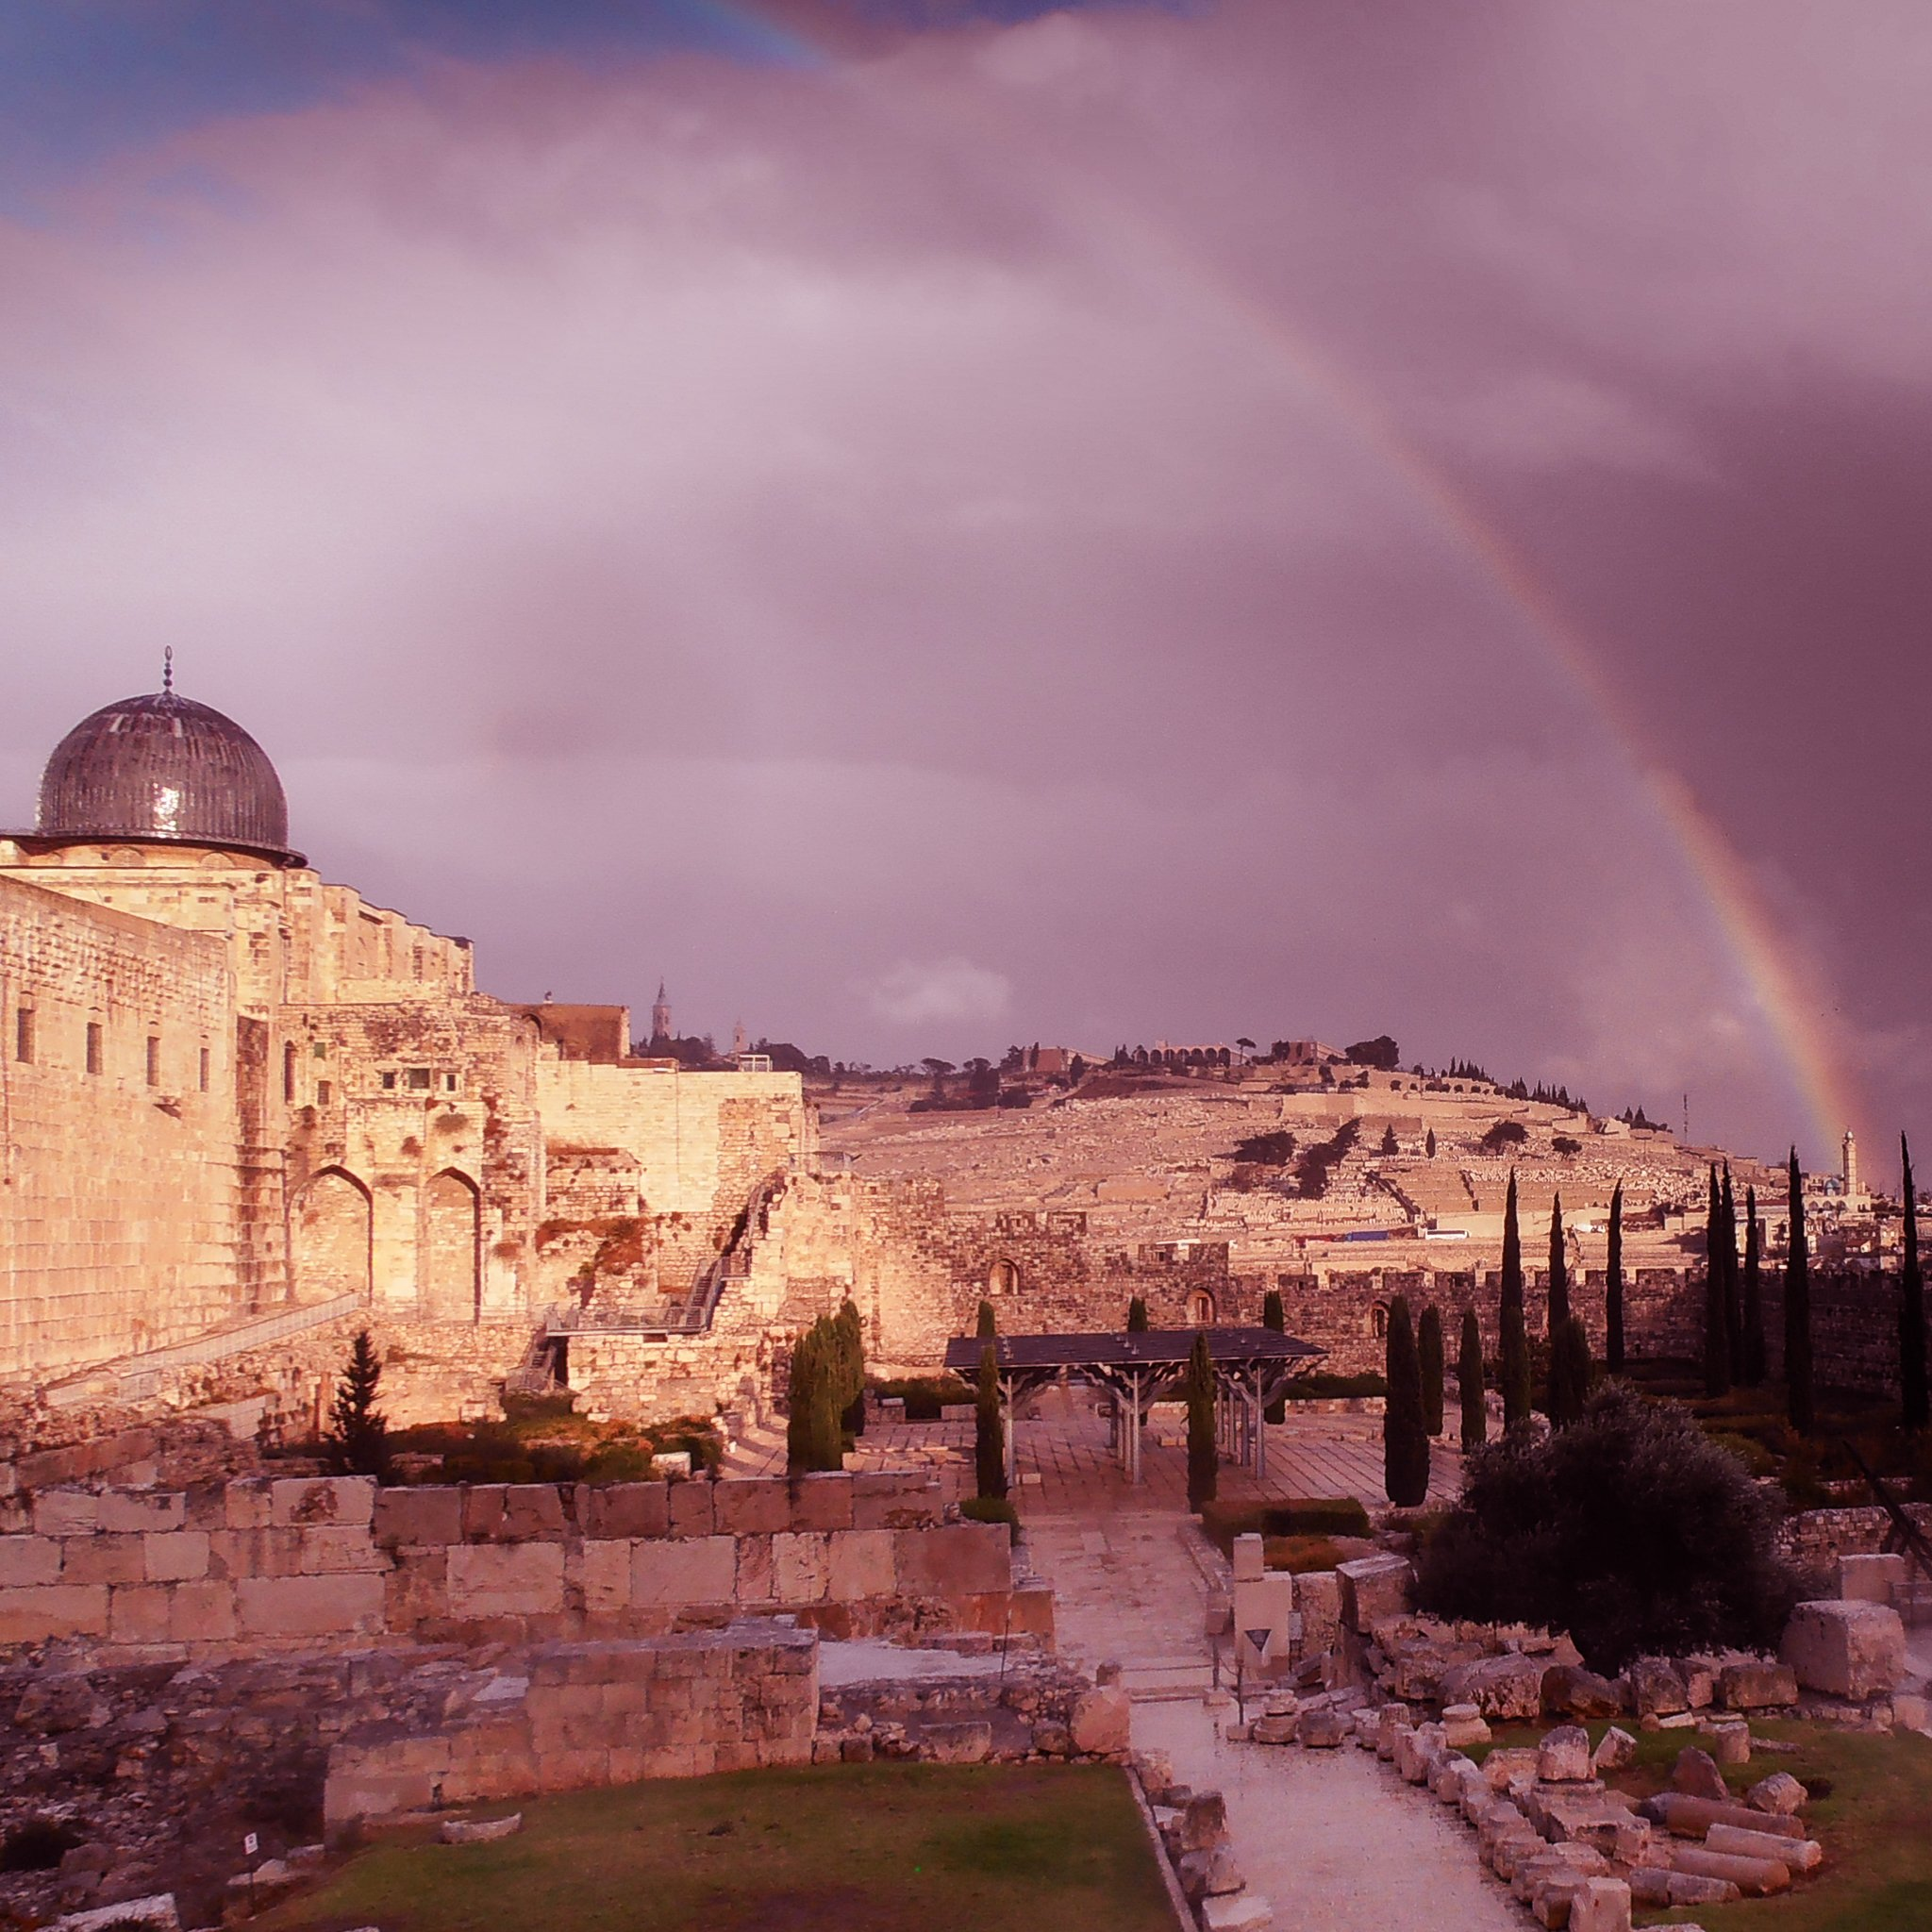 Rainbow over the Mount of Olives.